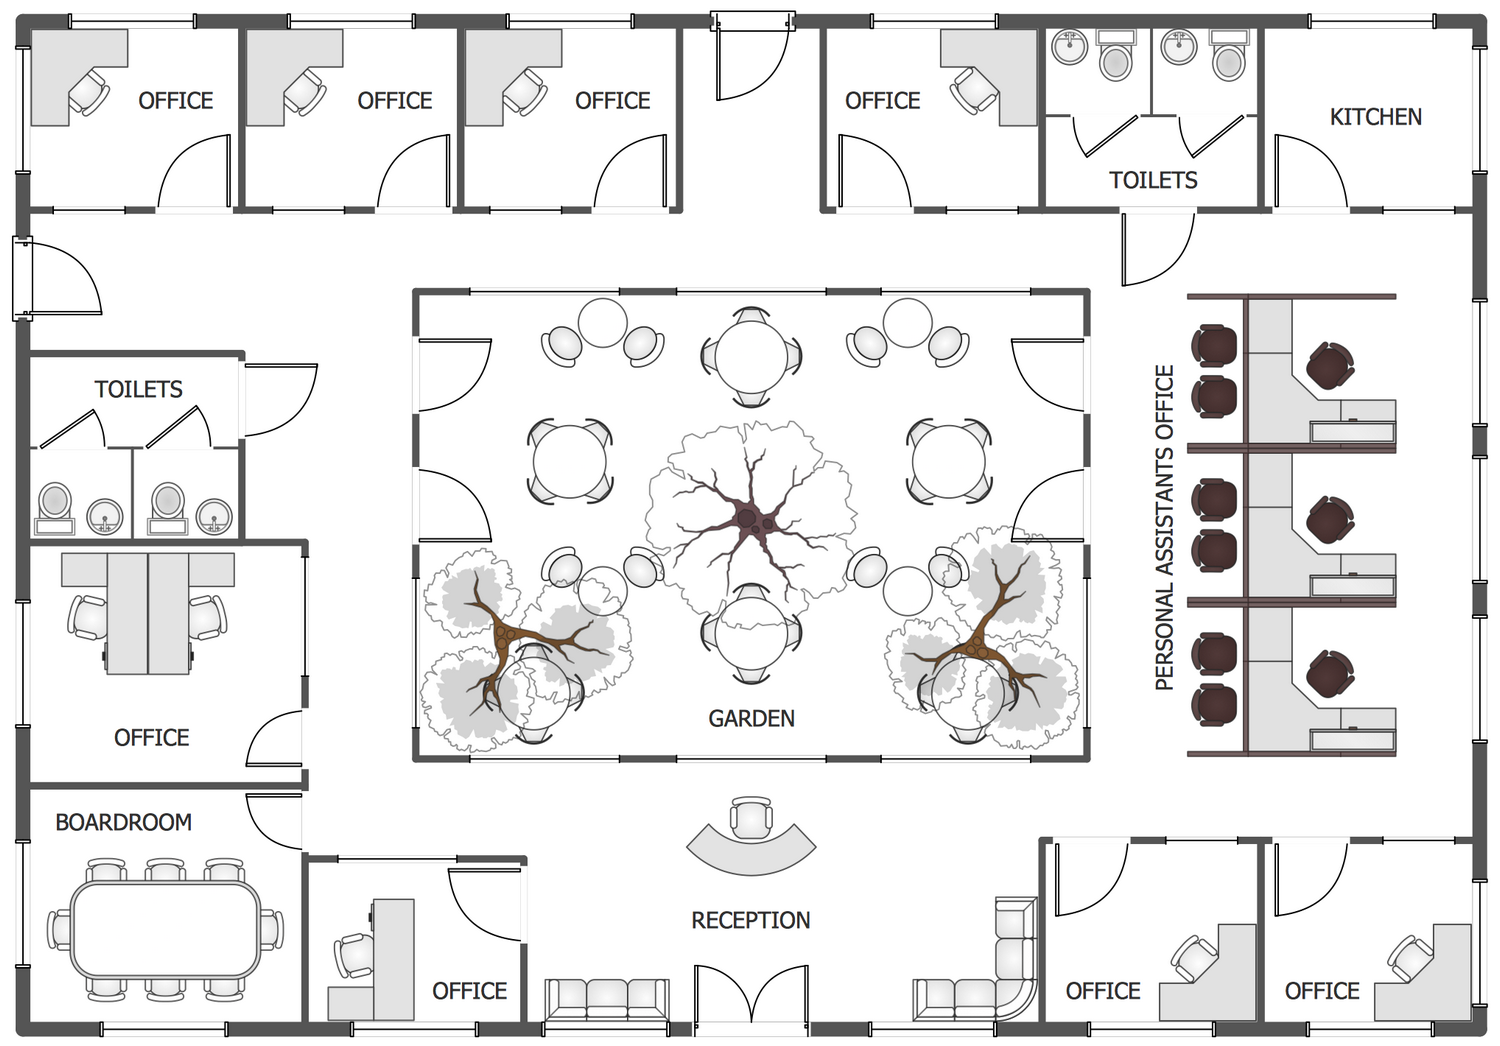 Office Arrangement Layout Productive Office Ground Office Floor Plan Office Floor Plan Conceptdrawcom Office Layout Plans Solution Conceptdrawcom